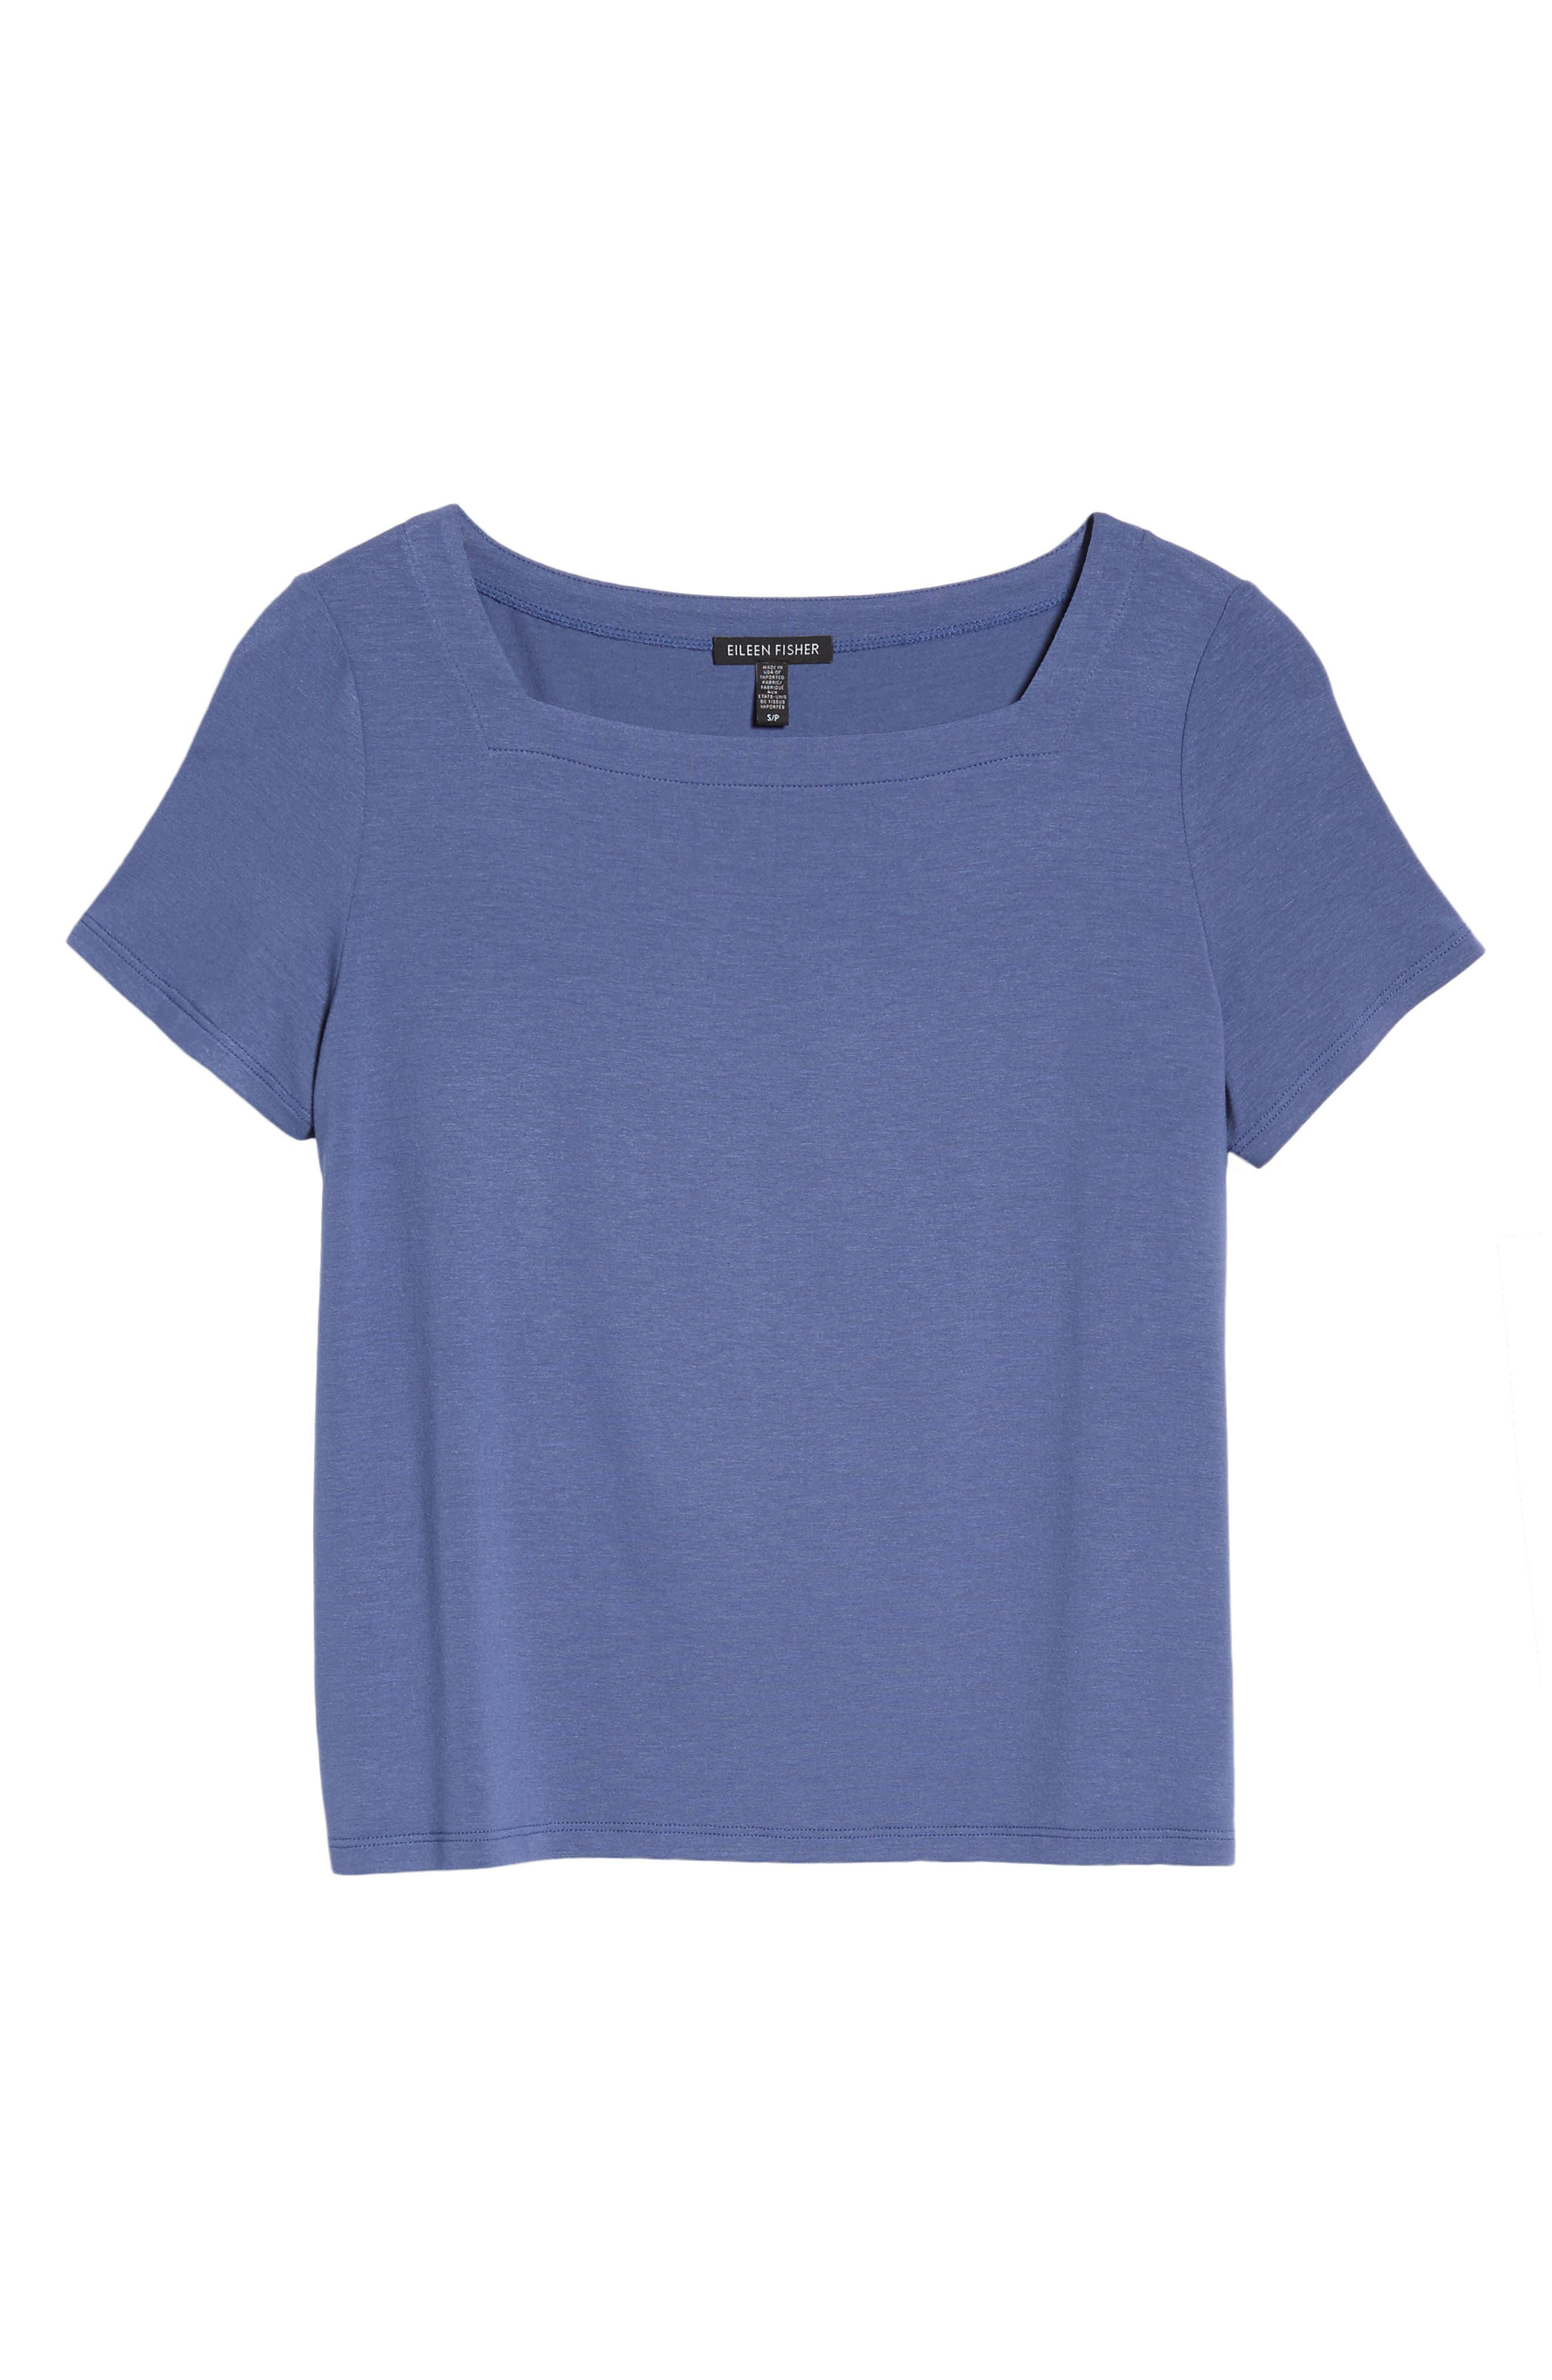 Square Neck Jersey Top,                             Alternate thumbnail 6, color,                             Blue Angel